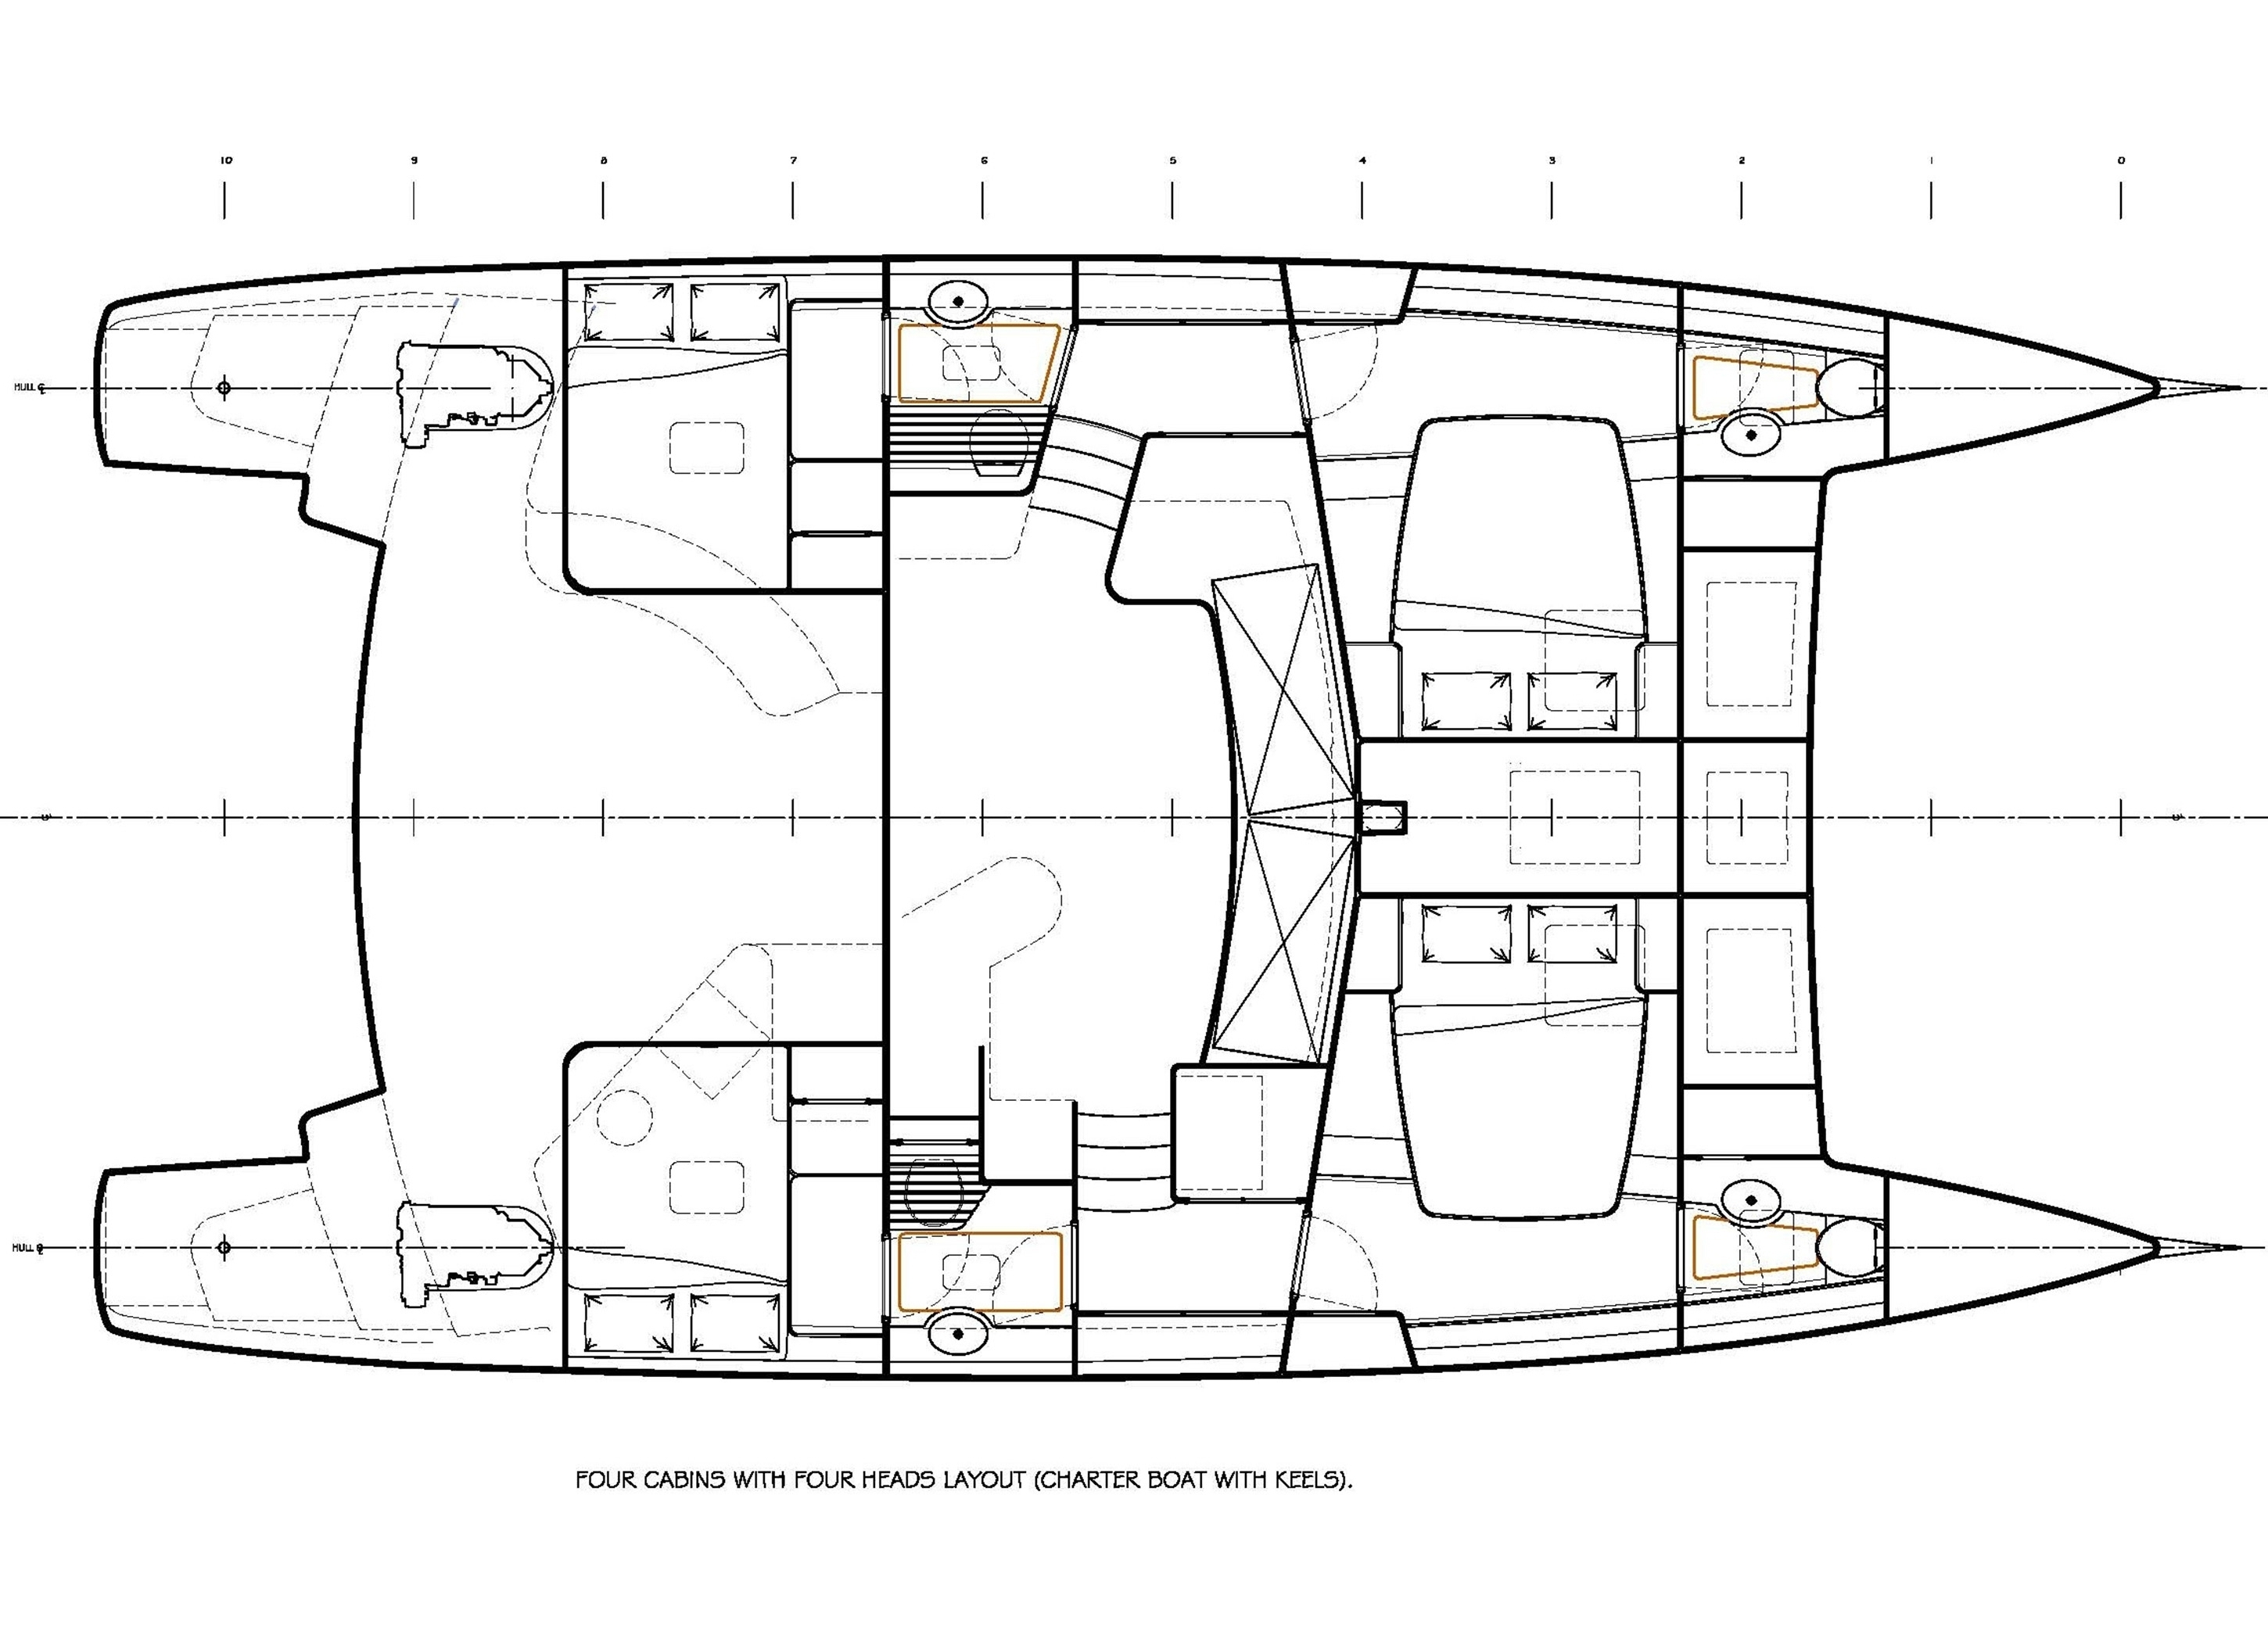 Four Cabin Layout